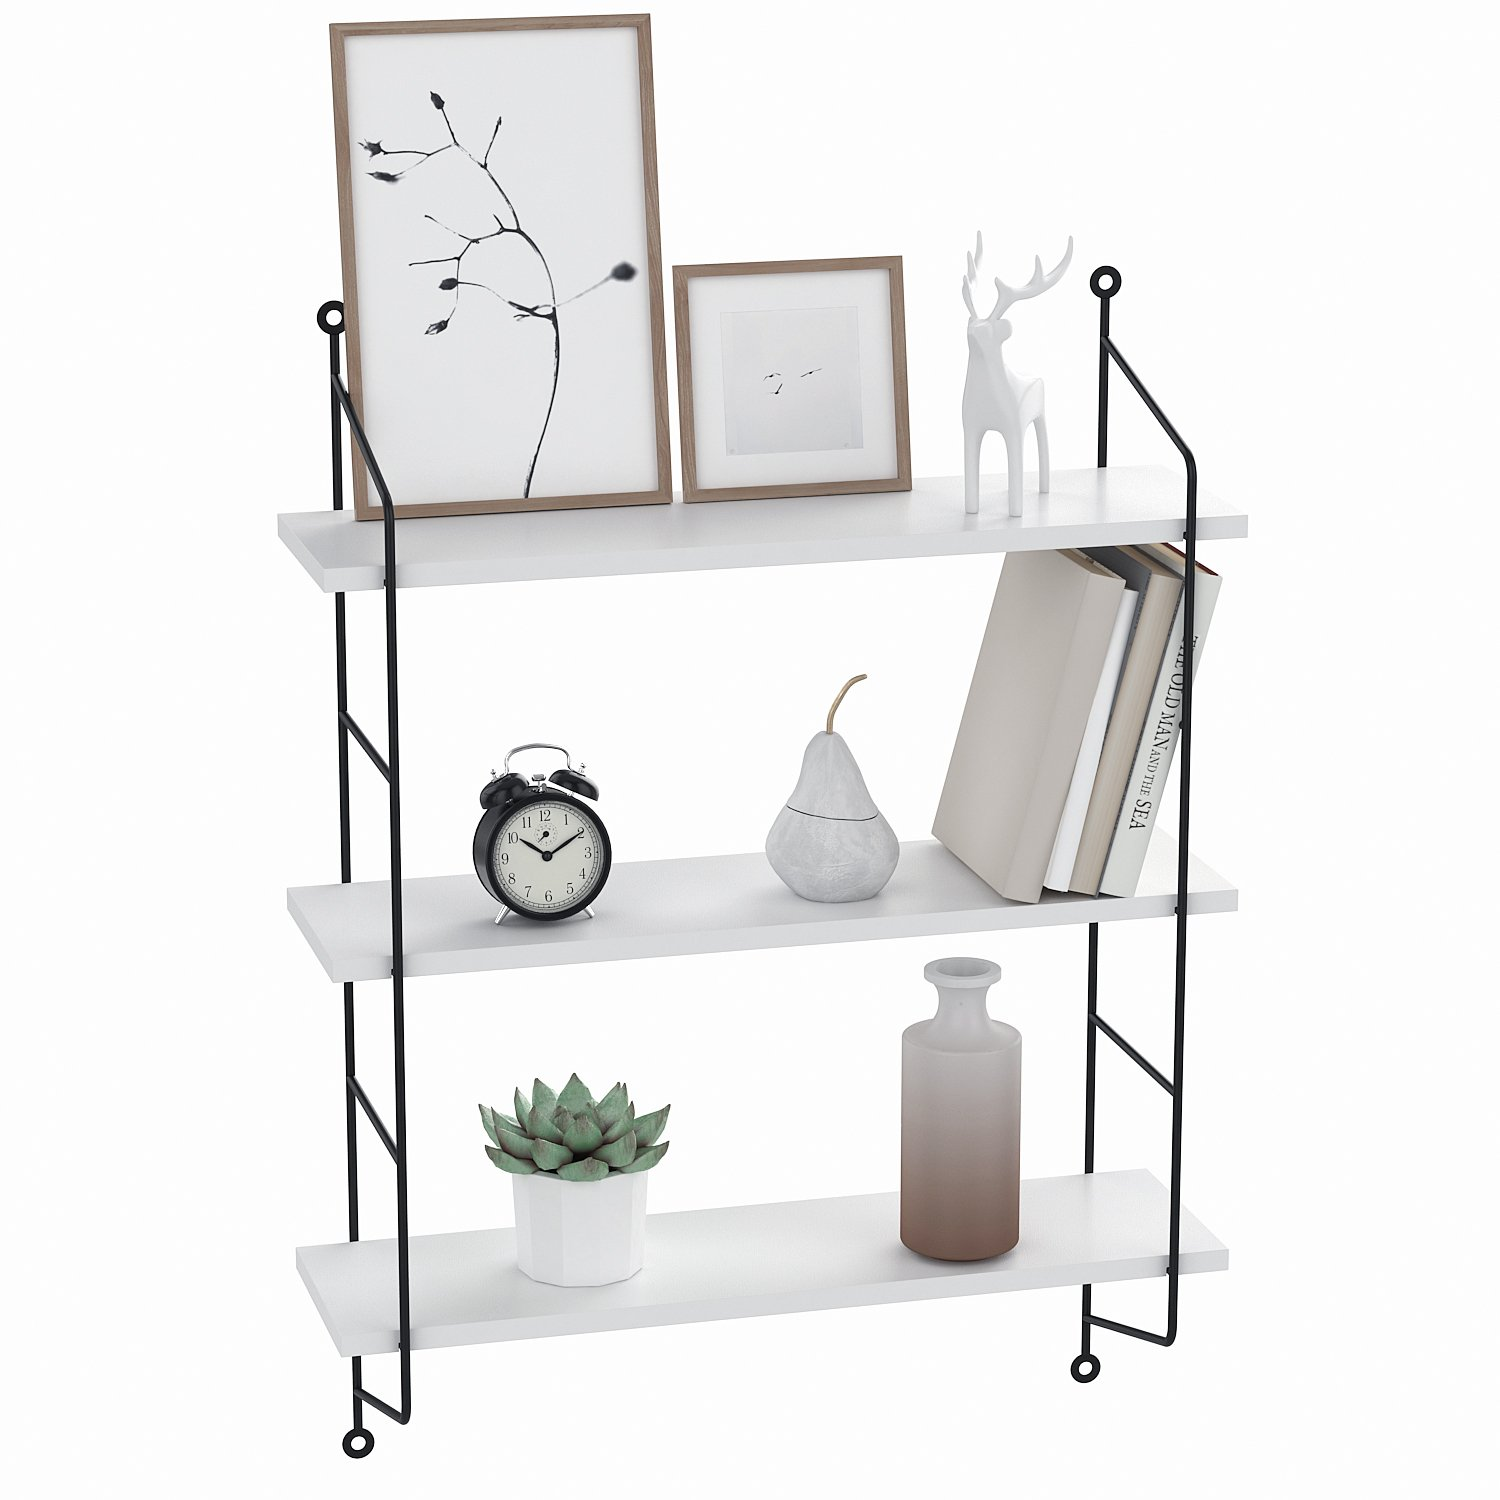 Floating Shelves Wall Mounted, Industrial Metal Frame Wood Wall Storage Shelves for Bedroom, Living Room, Bathroom, Kitchen, Office and More, 3 Tier(White)